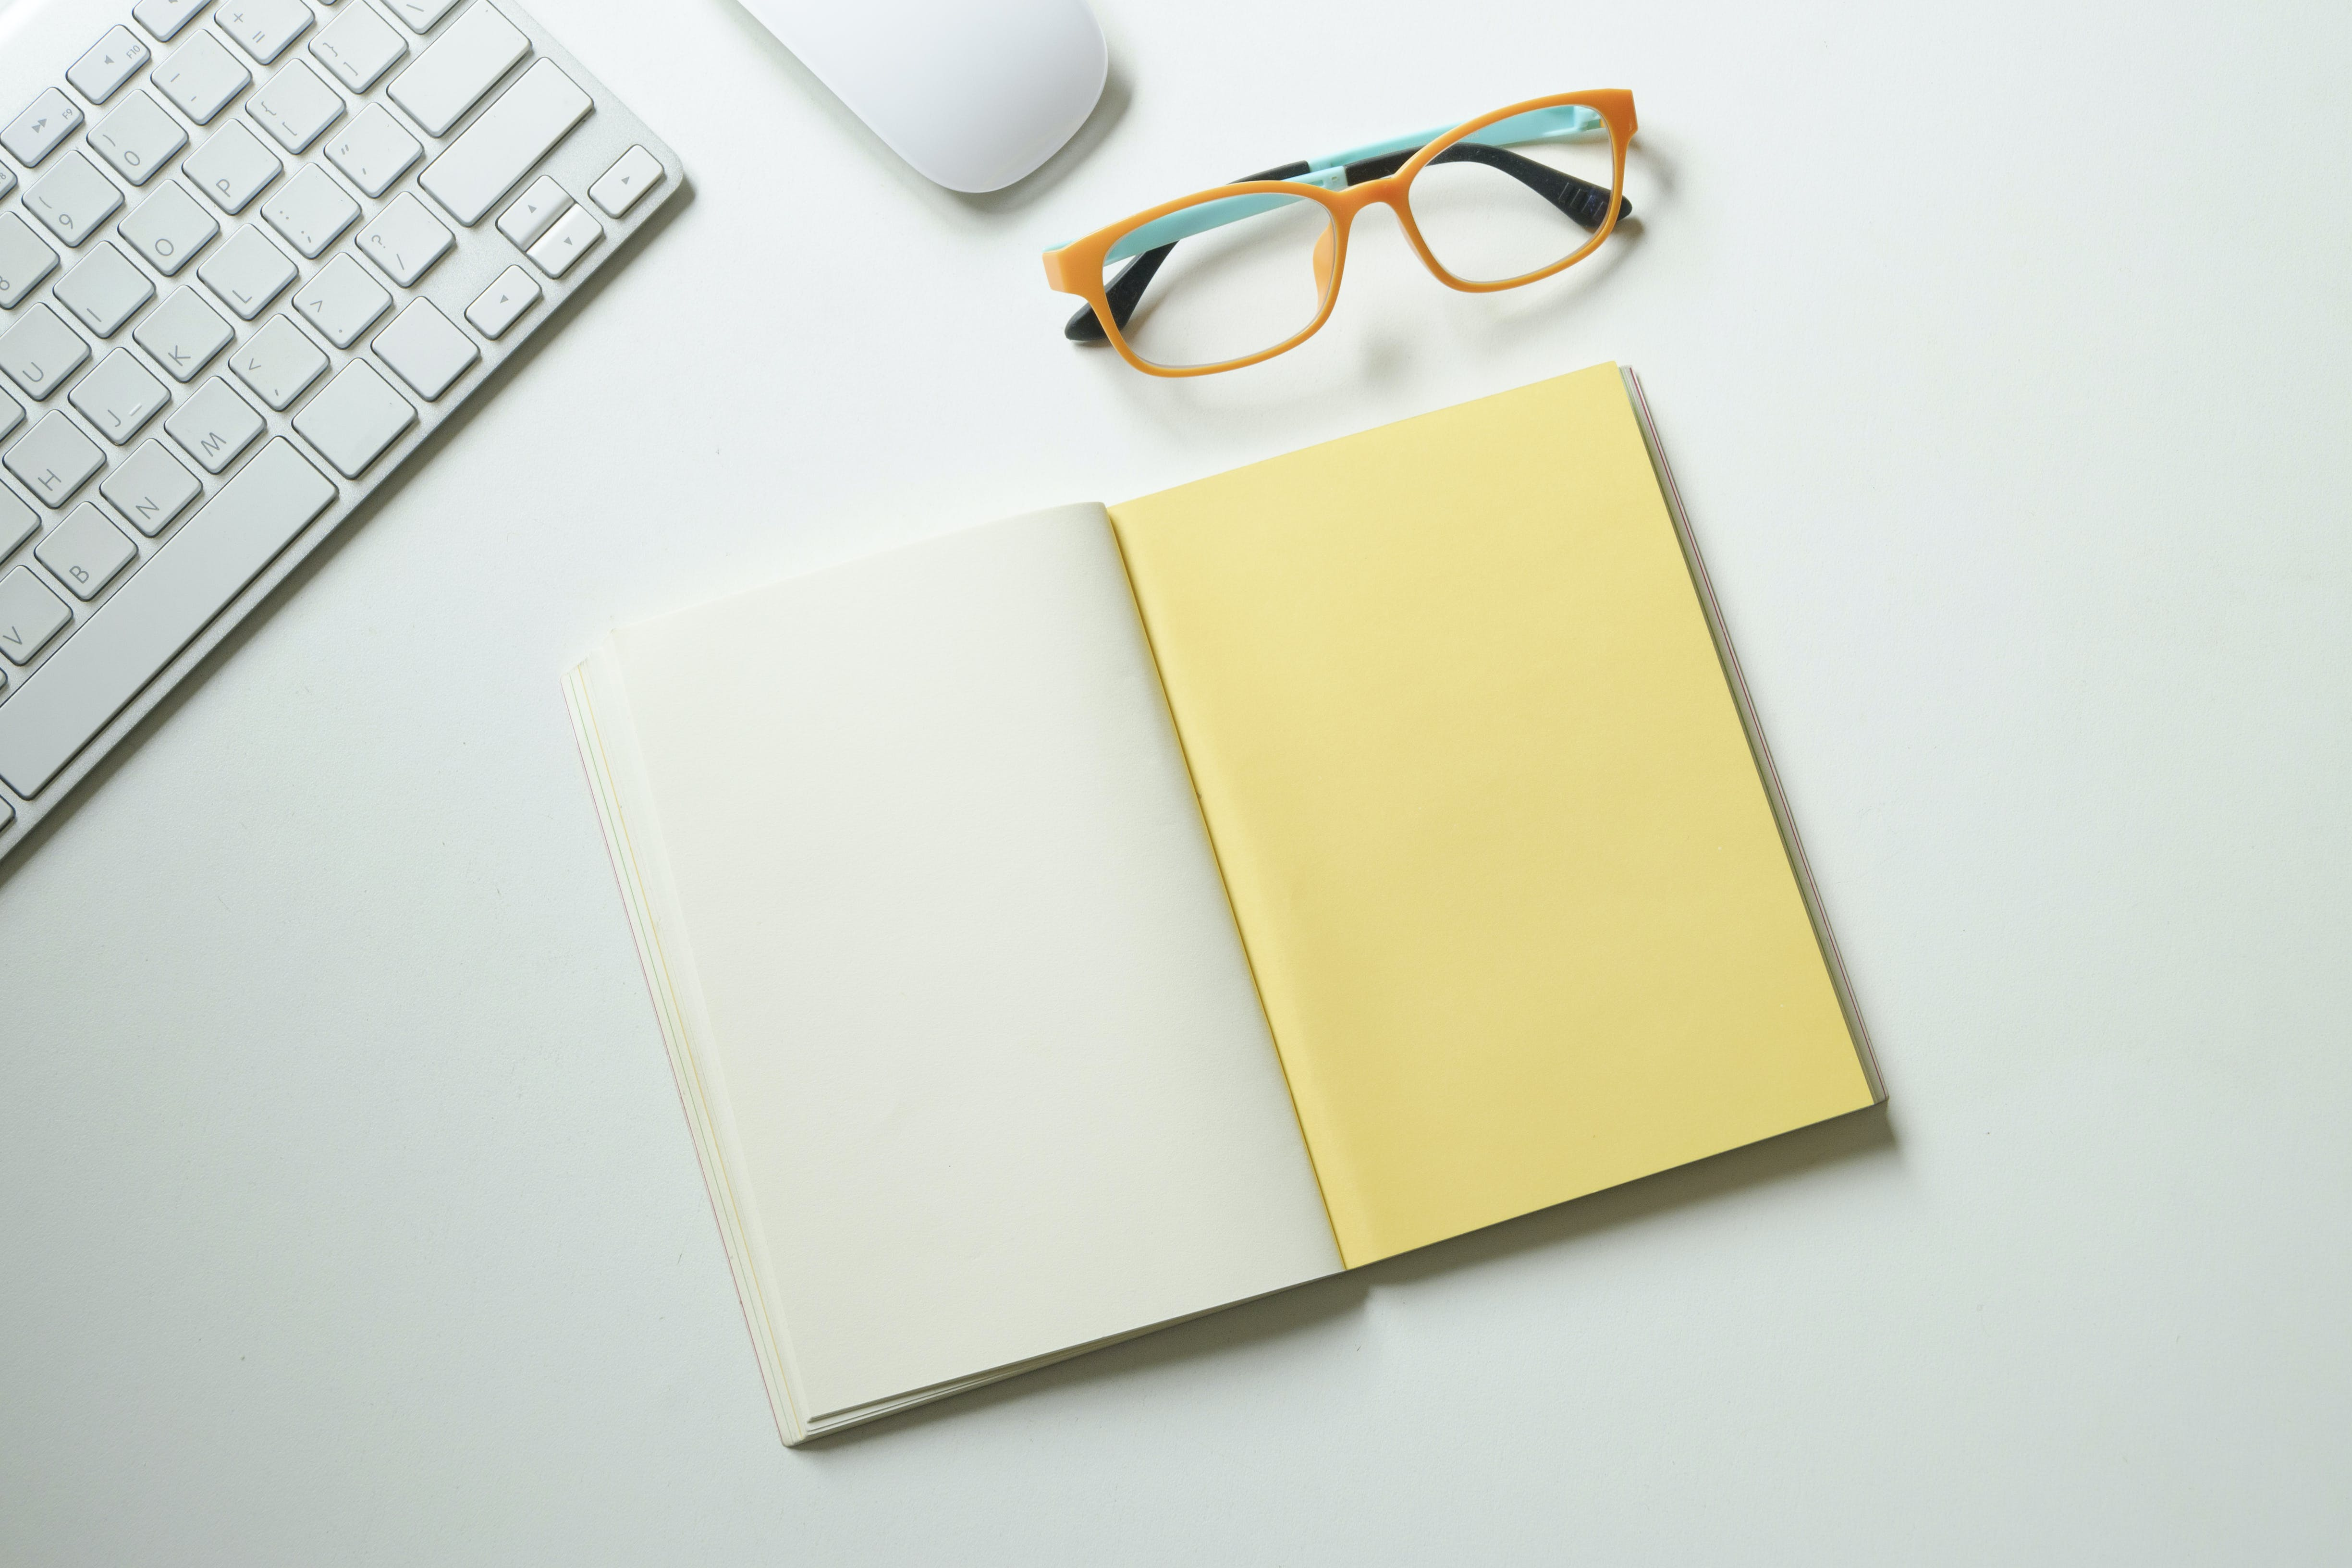 White and Yellow Notebook Placed Near Keyboard and Eyeglasses